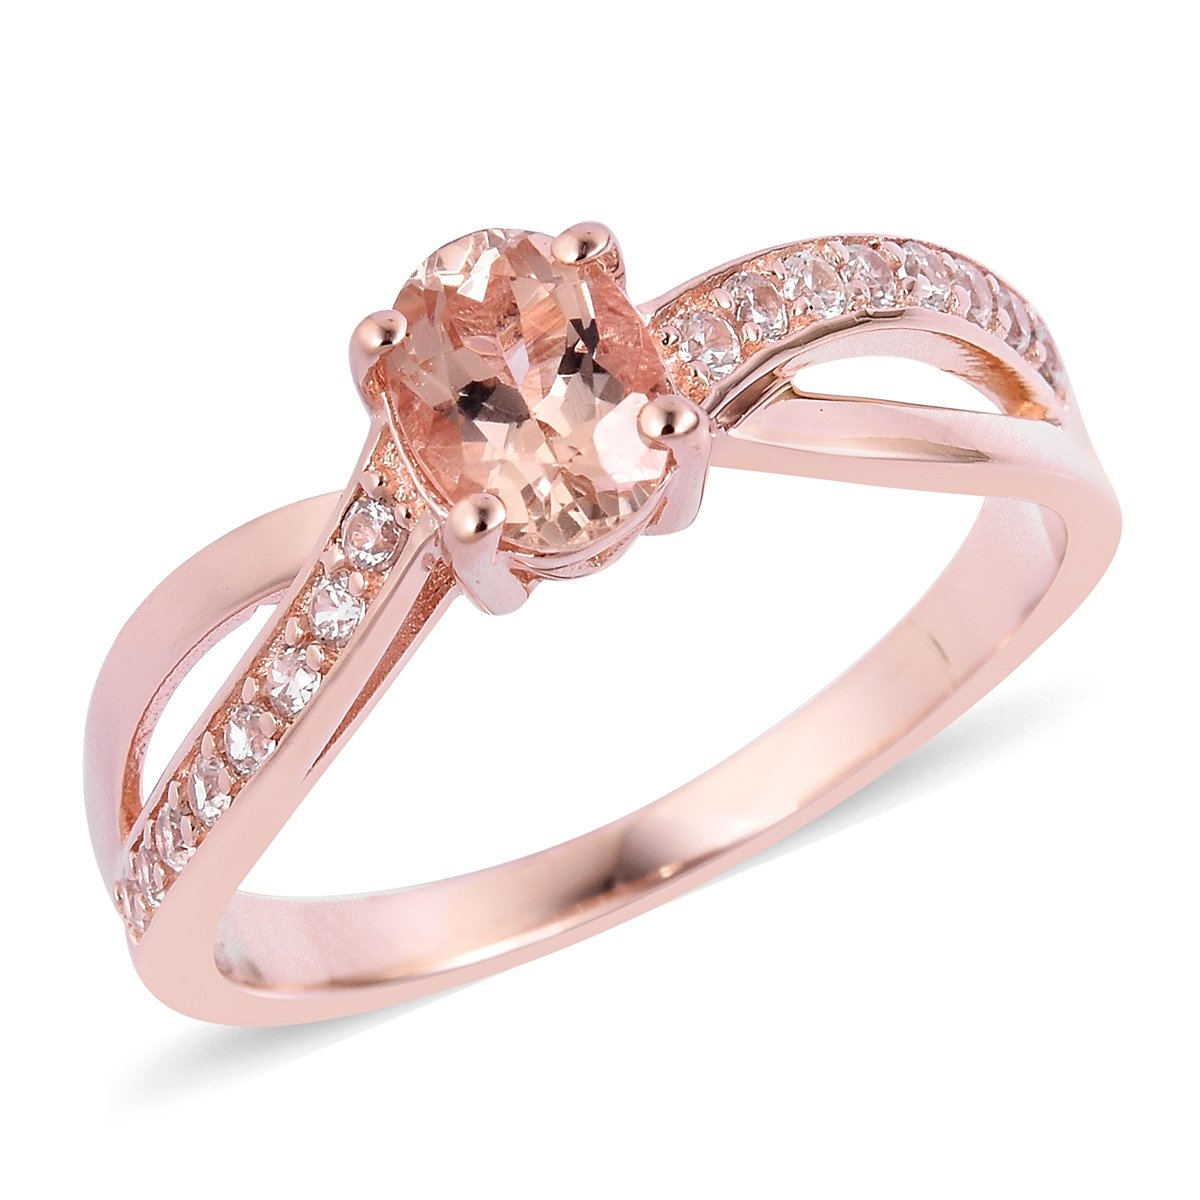 925 Sterling Silver Vermeil Rose Gold Plated 0.9 Cttw Oval Morganite, White Zircon Ring For Women Size 5